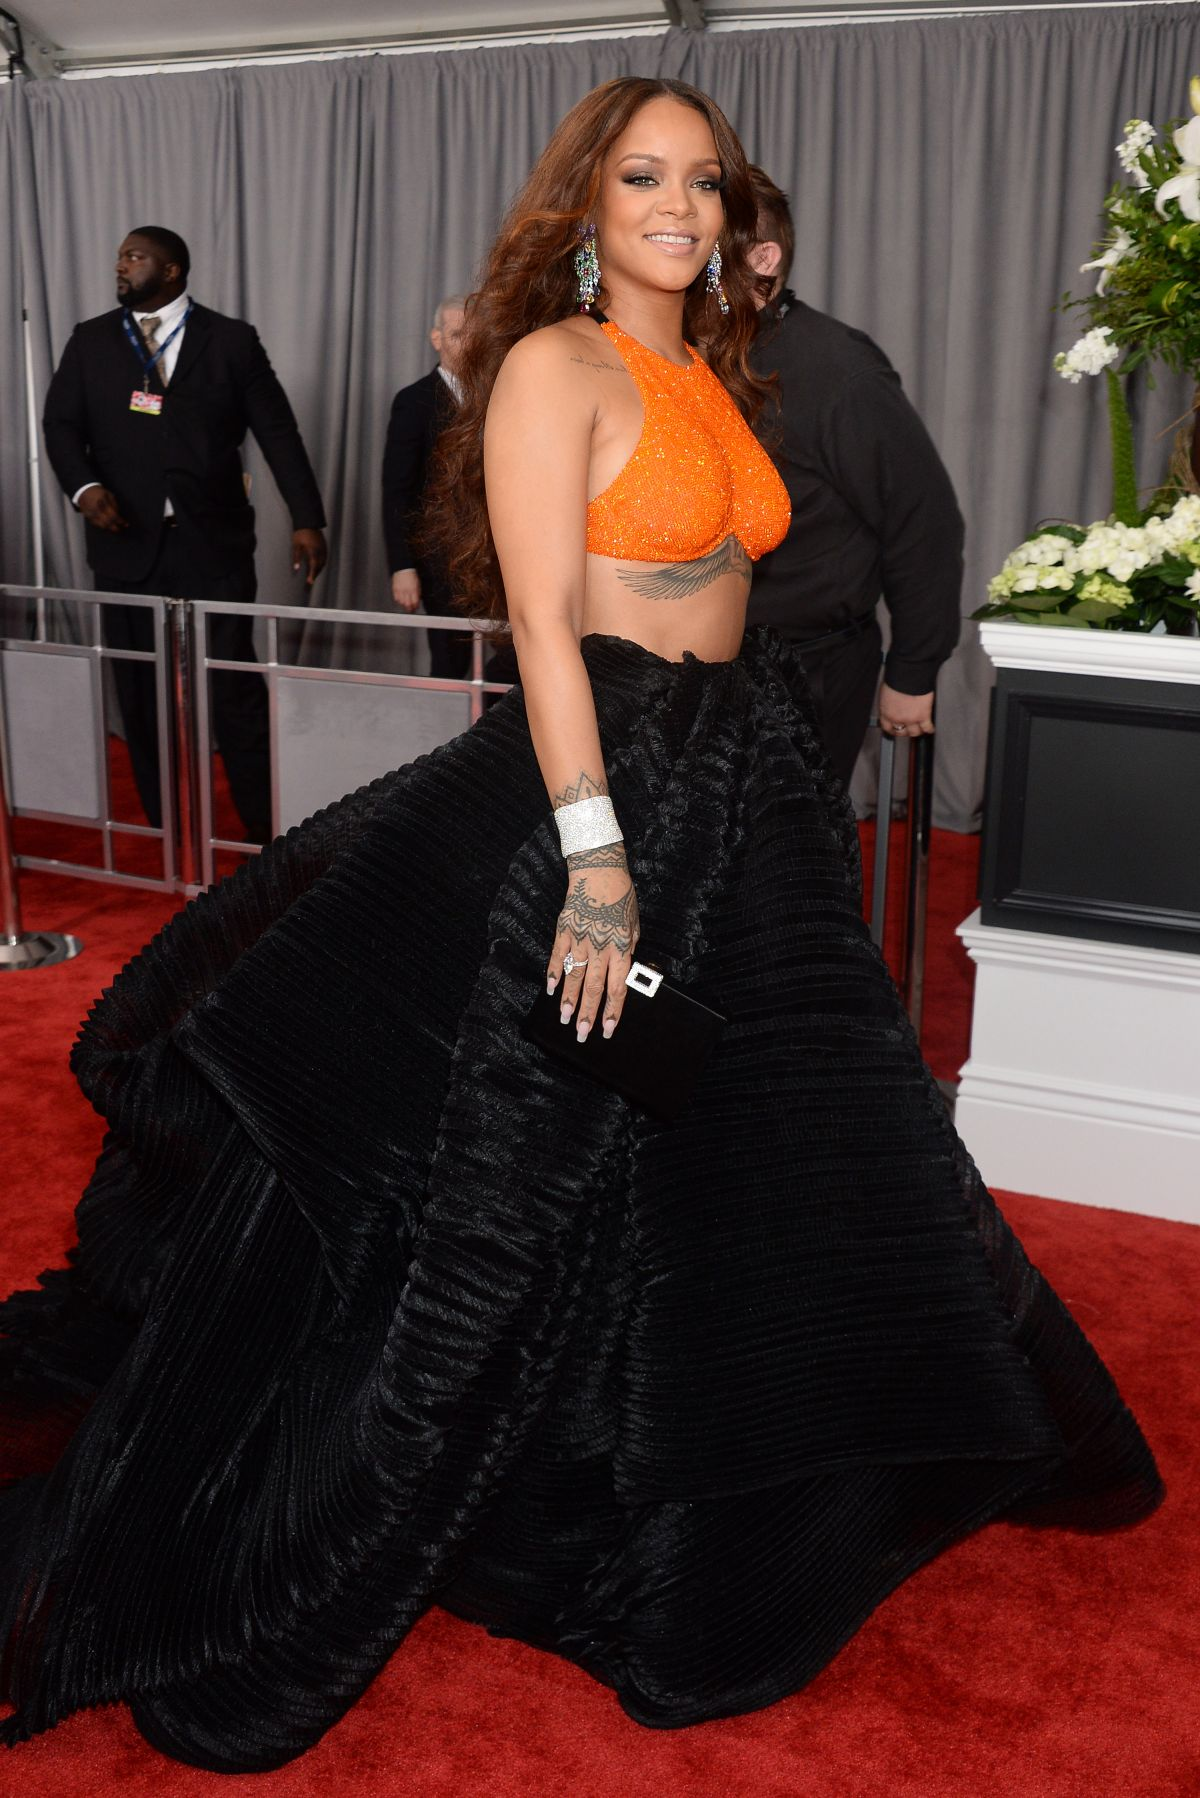 RIHANNA at 59th Annual Grammy Awards in Los Angeles 02/12 ...